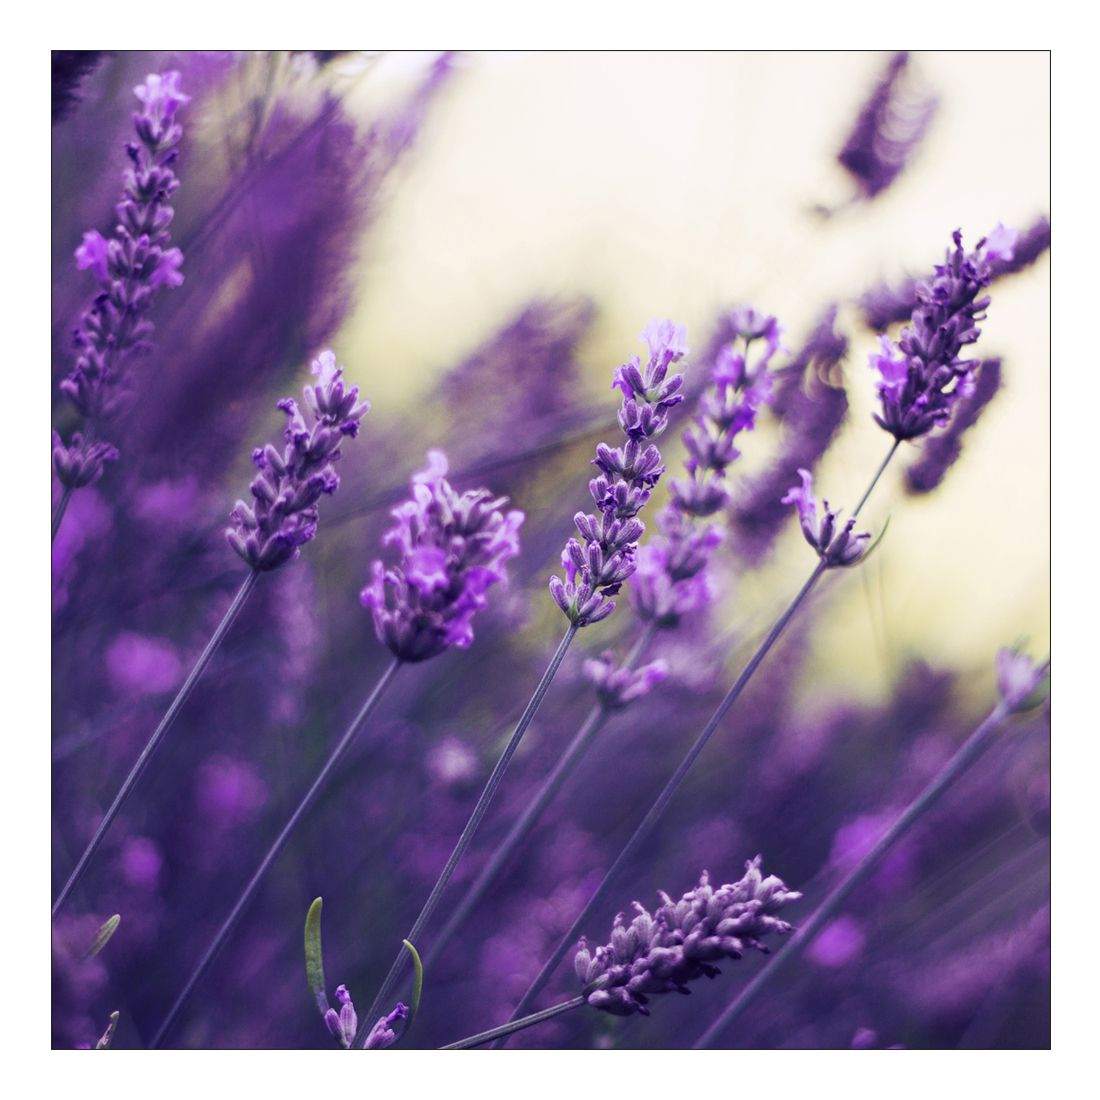 Leinwandbild PURPLE LAVENDEL – Abmessung 100 x 50 cm, Gallery of Innovative Art online bestellen